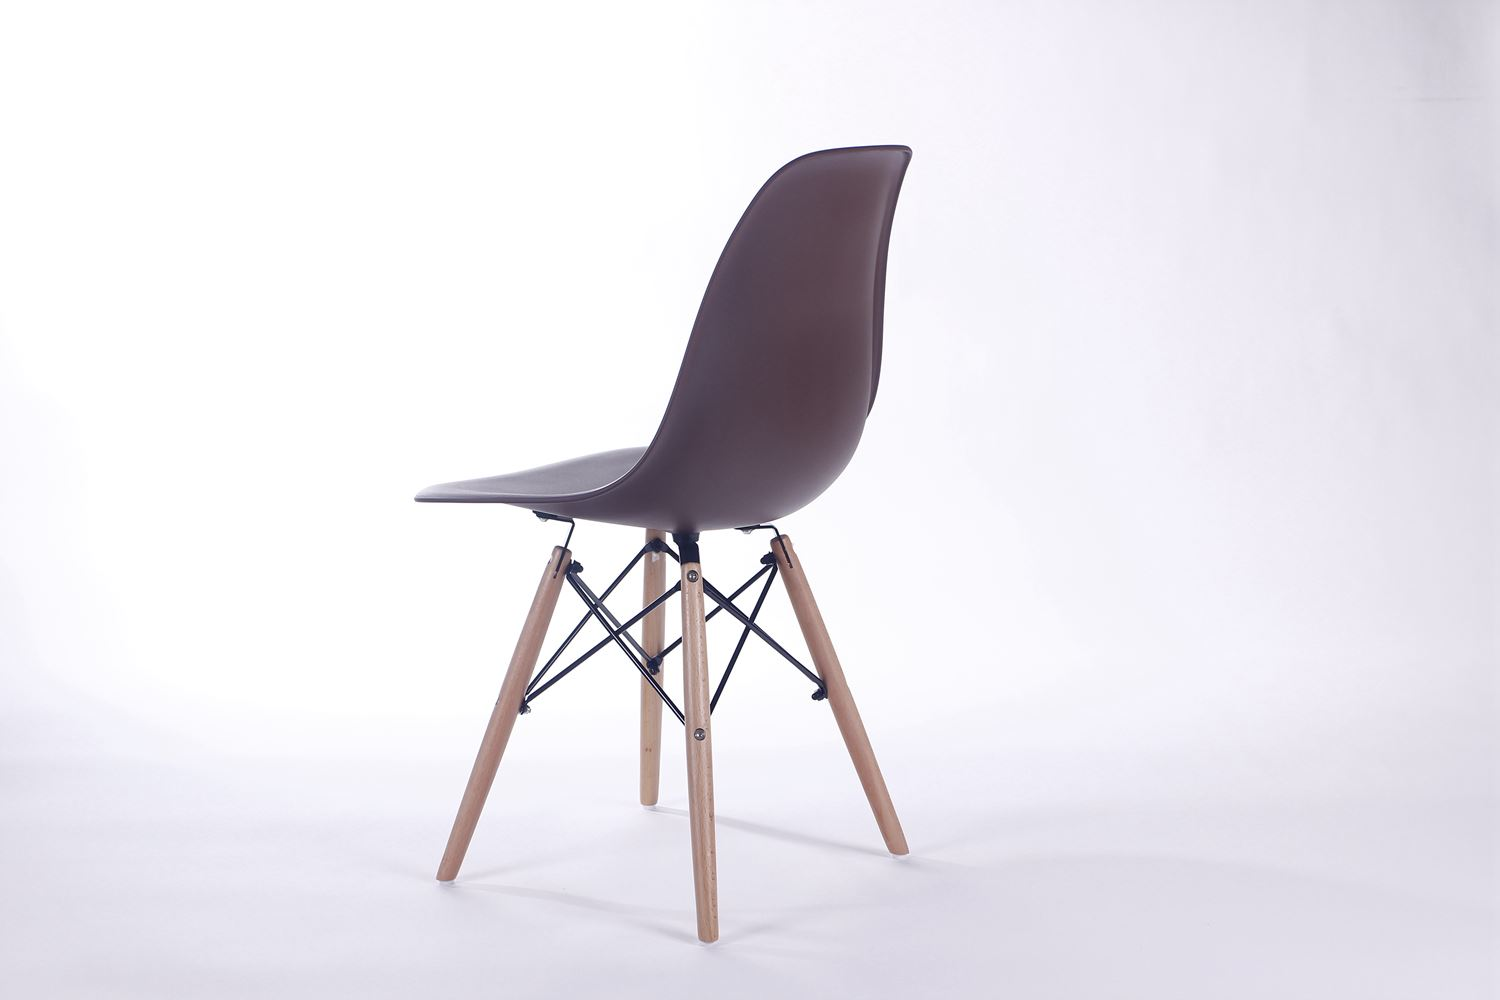 Bcea Charles Ray Eames Eiffel Inspired Dsw Dining Chair Retro